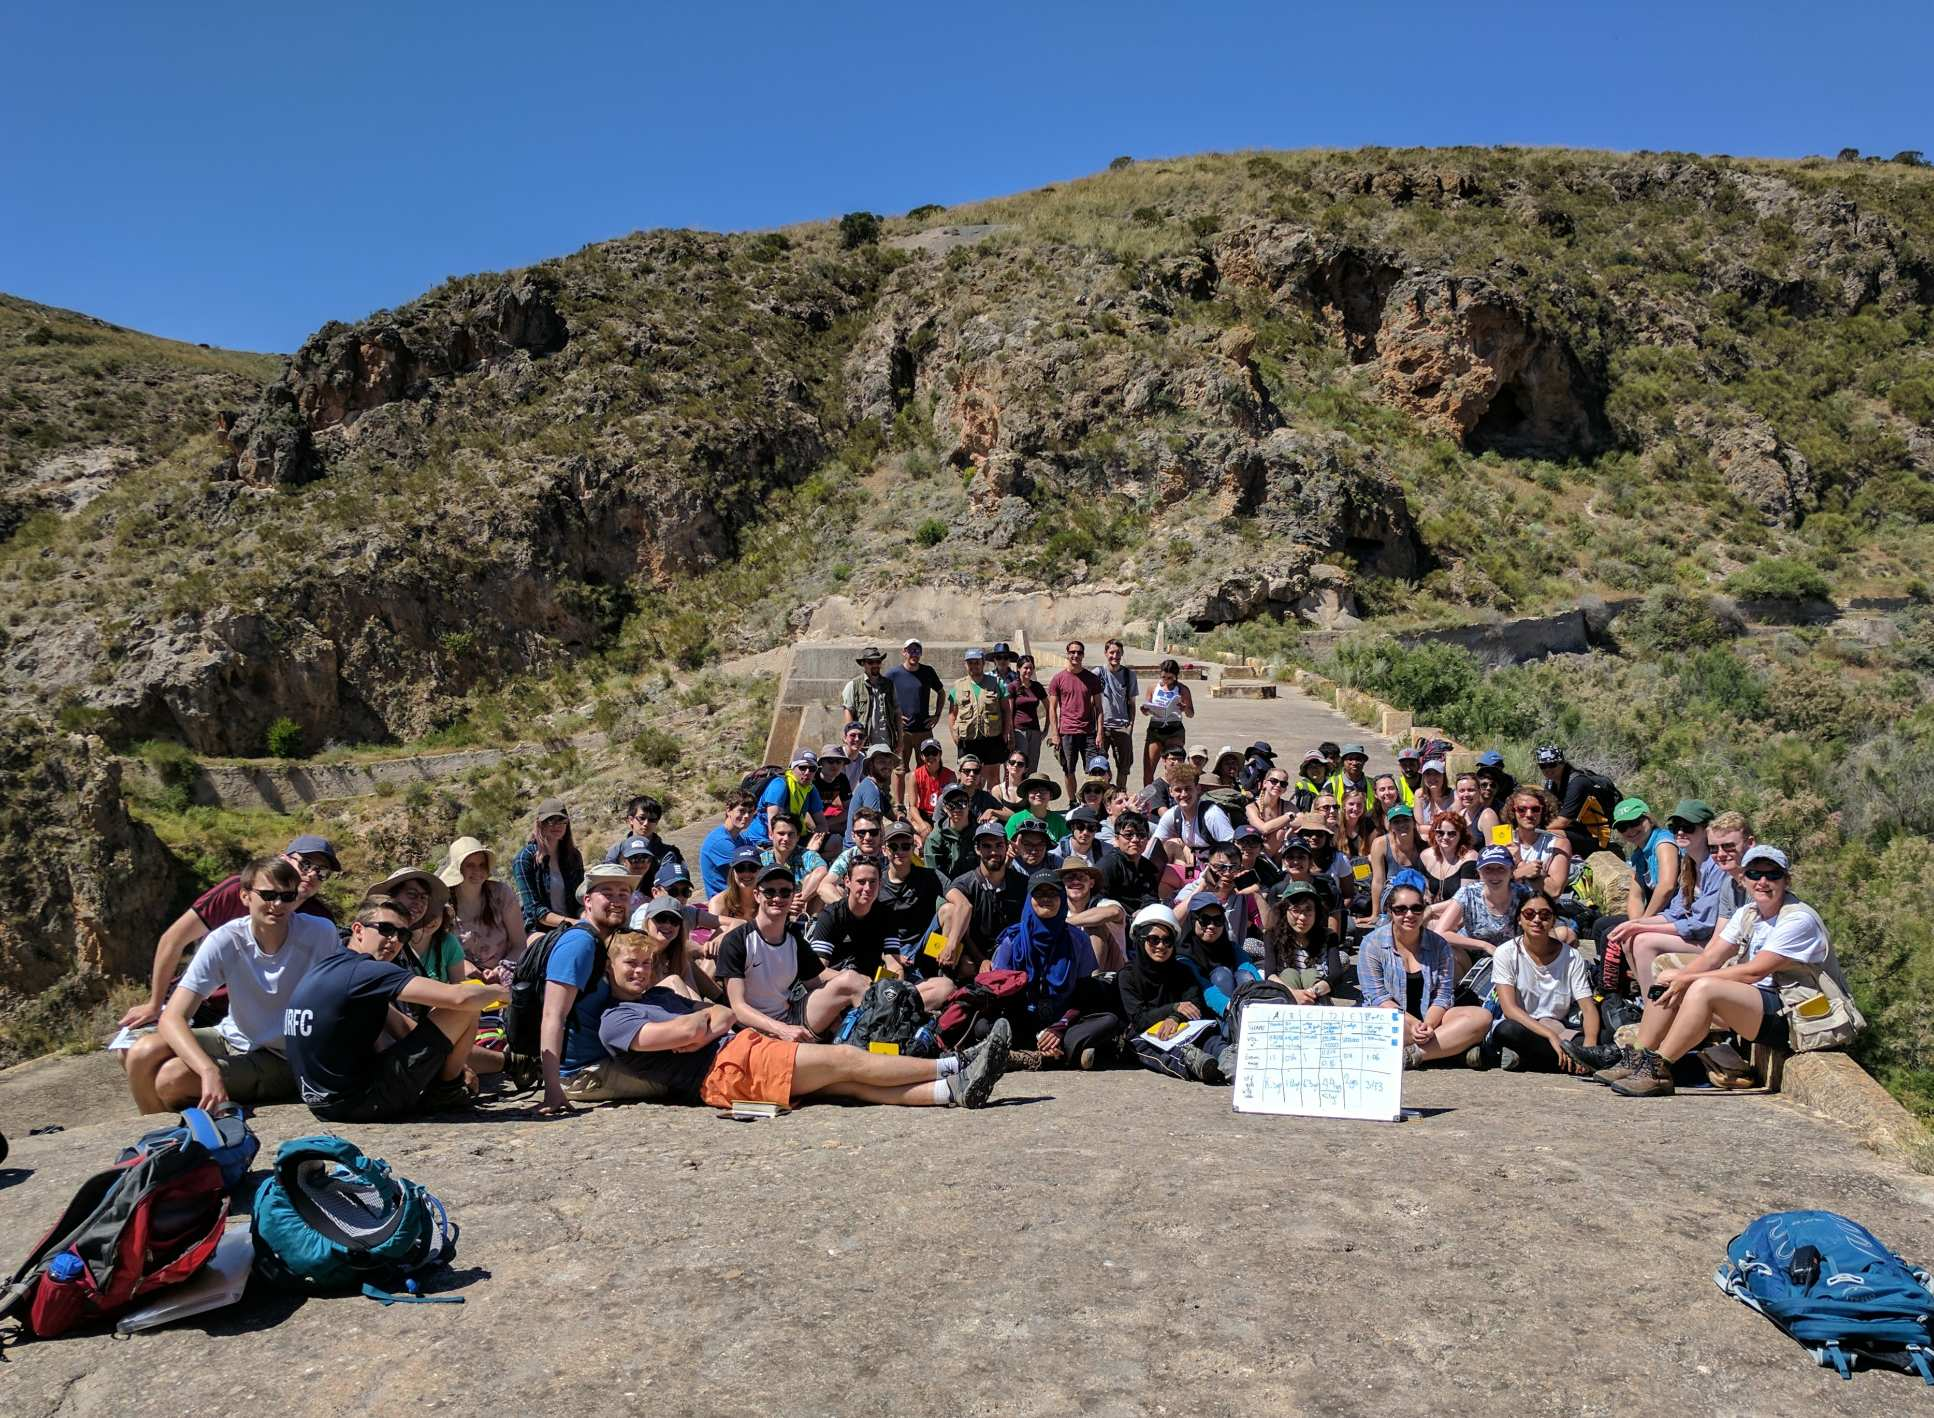 A large group of students on the 2017 Almeria field trip sit together with rocky hills in the background